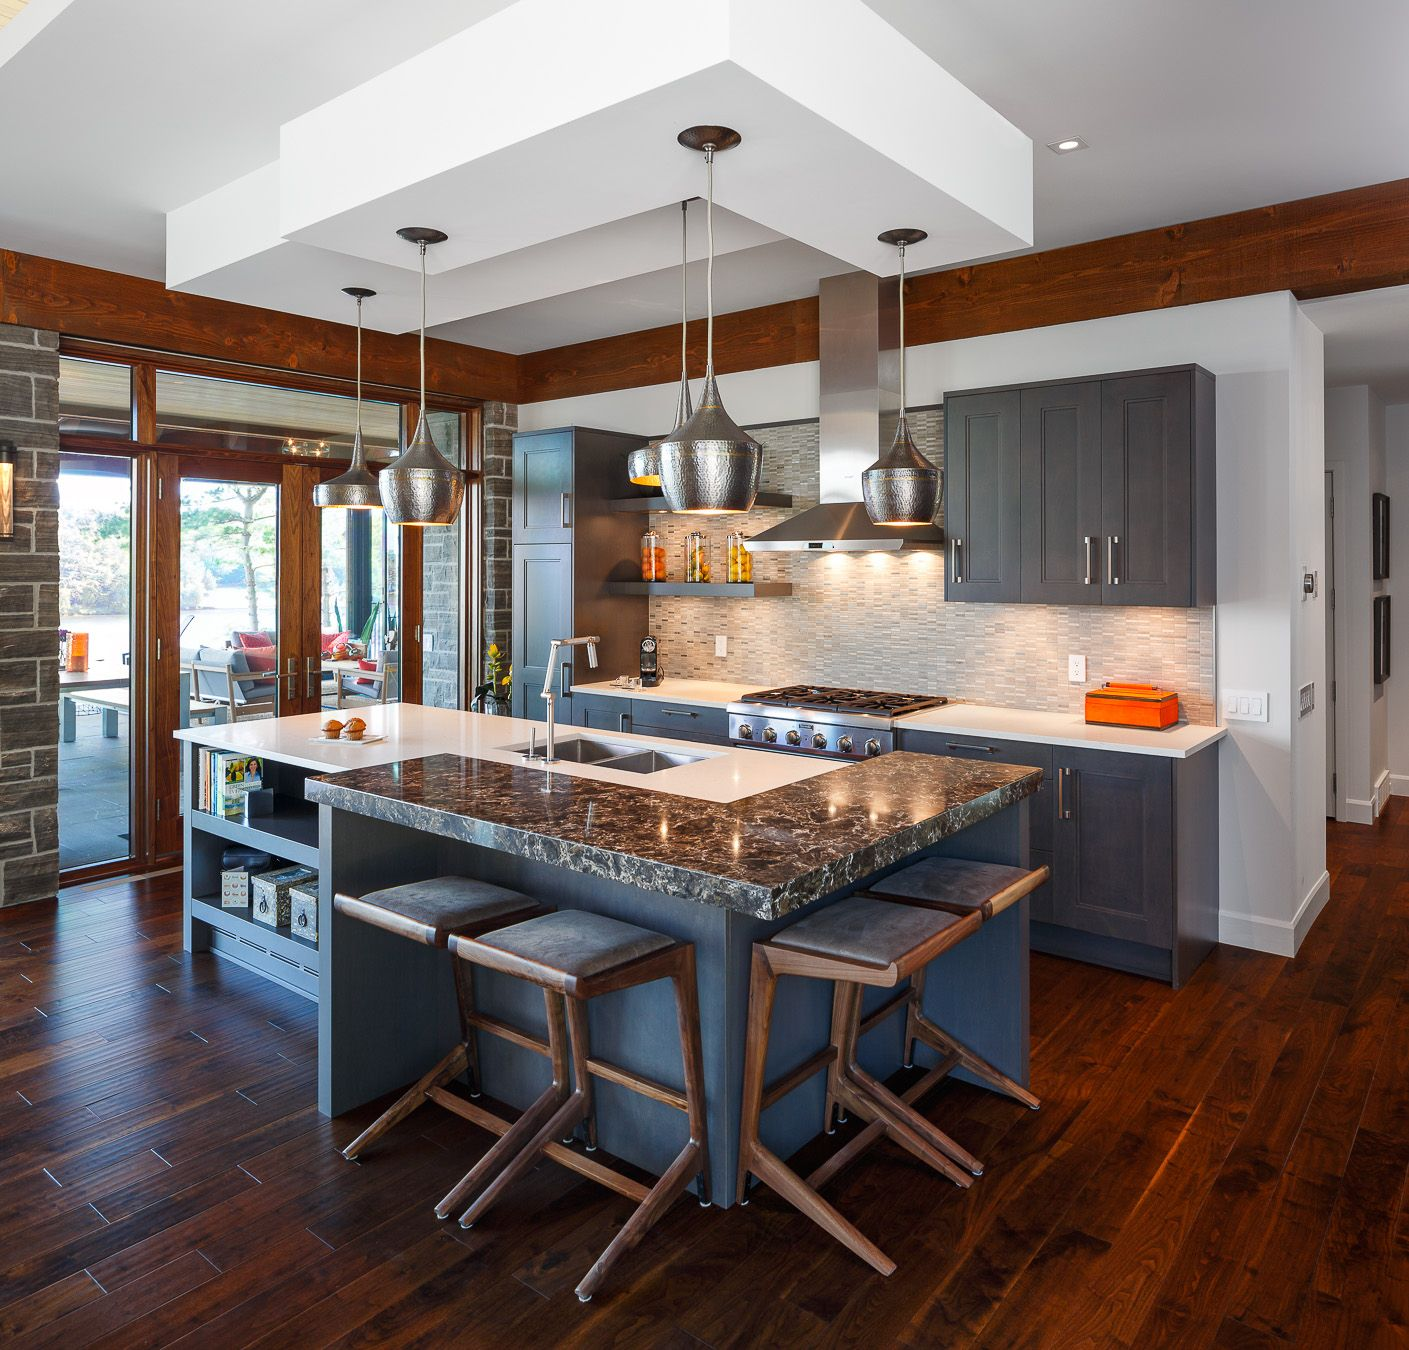 Modernized Bungalow Kitchen Renovation: See How You Can Blend Two Styles Creatively In Your